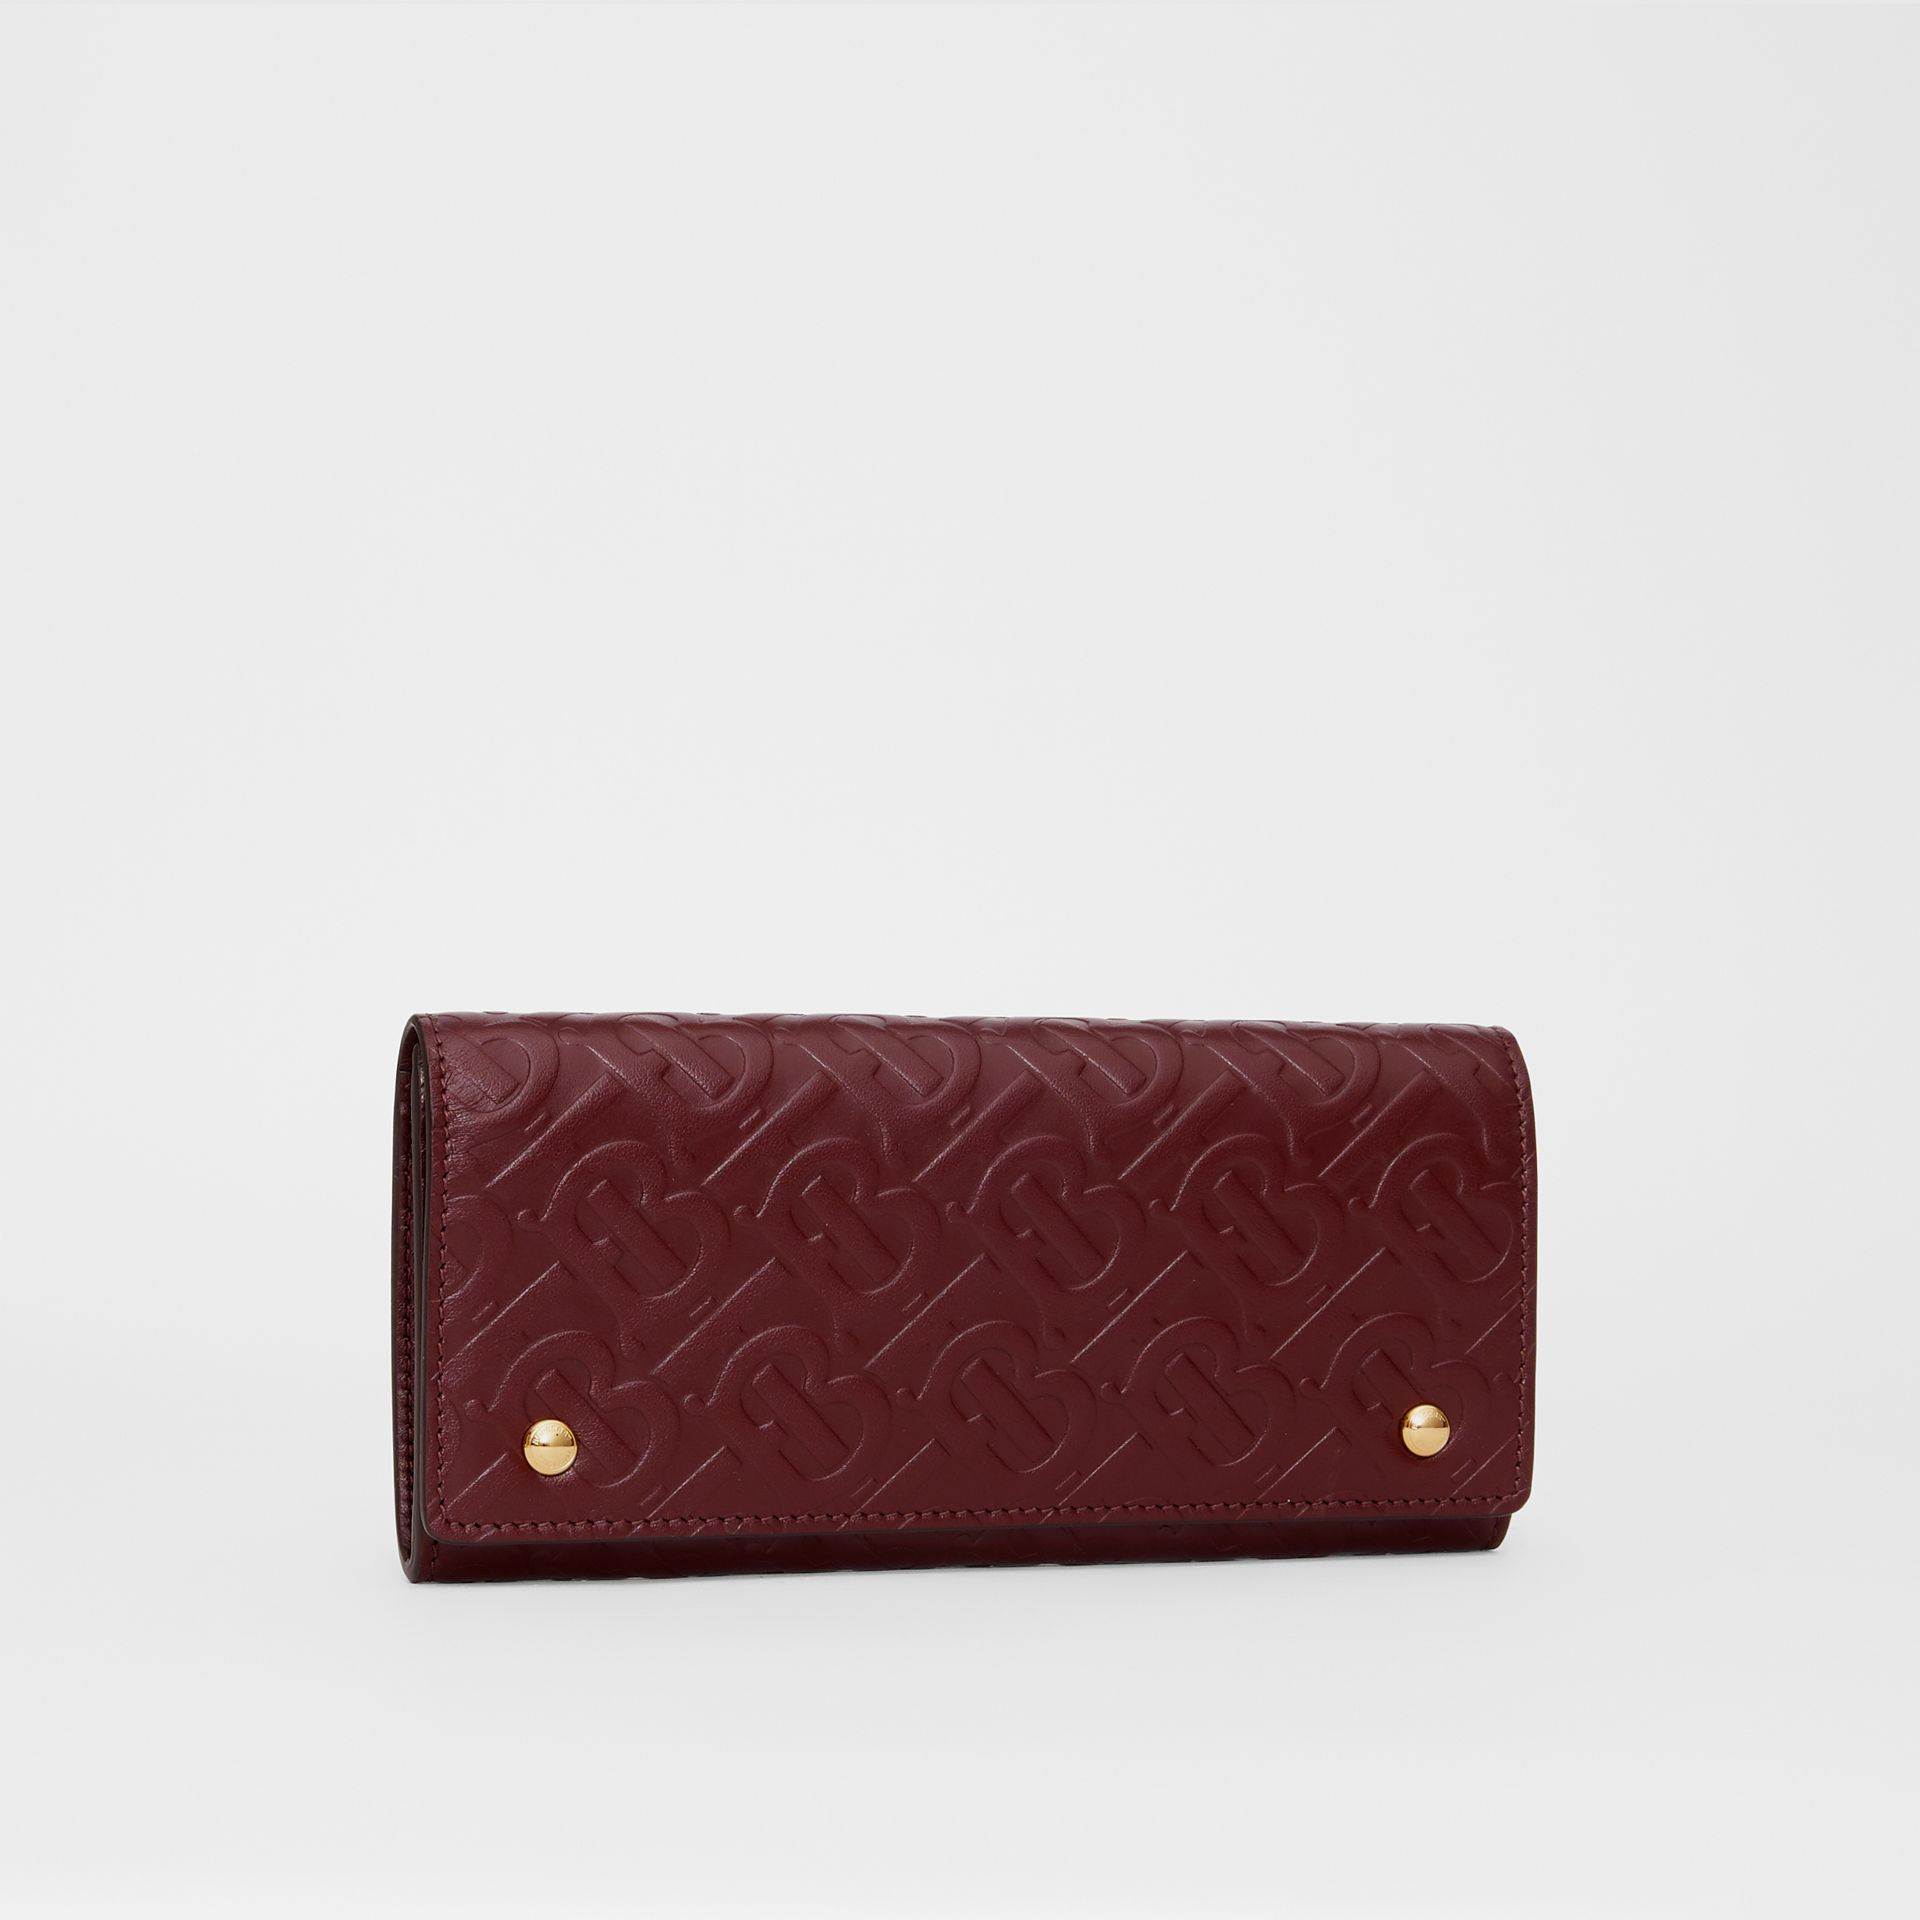 Portefeuille continental en cuir Monogram (Oxblood) - Femme | Burberry - photo de la galerie 4